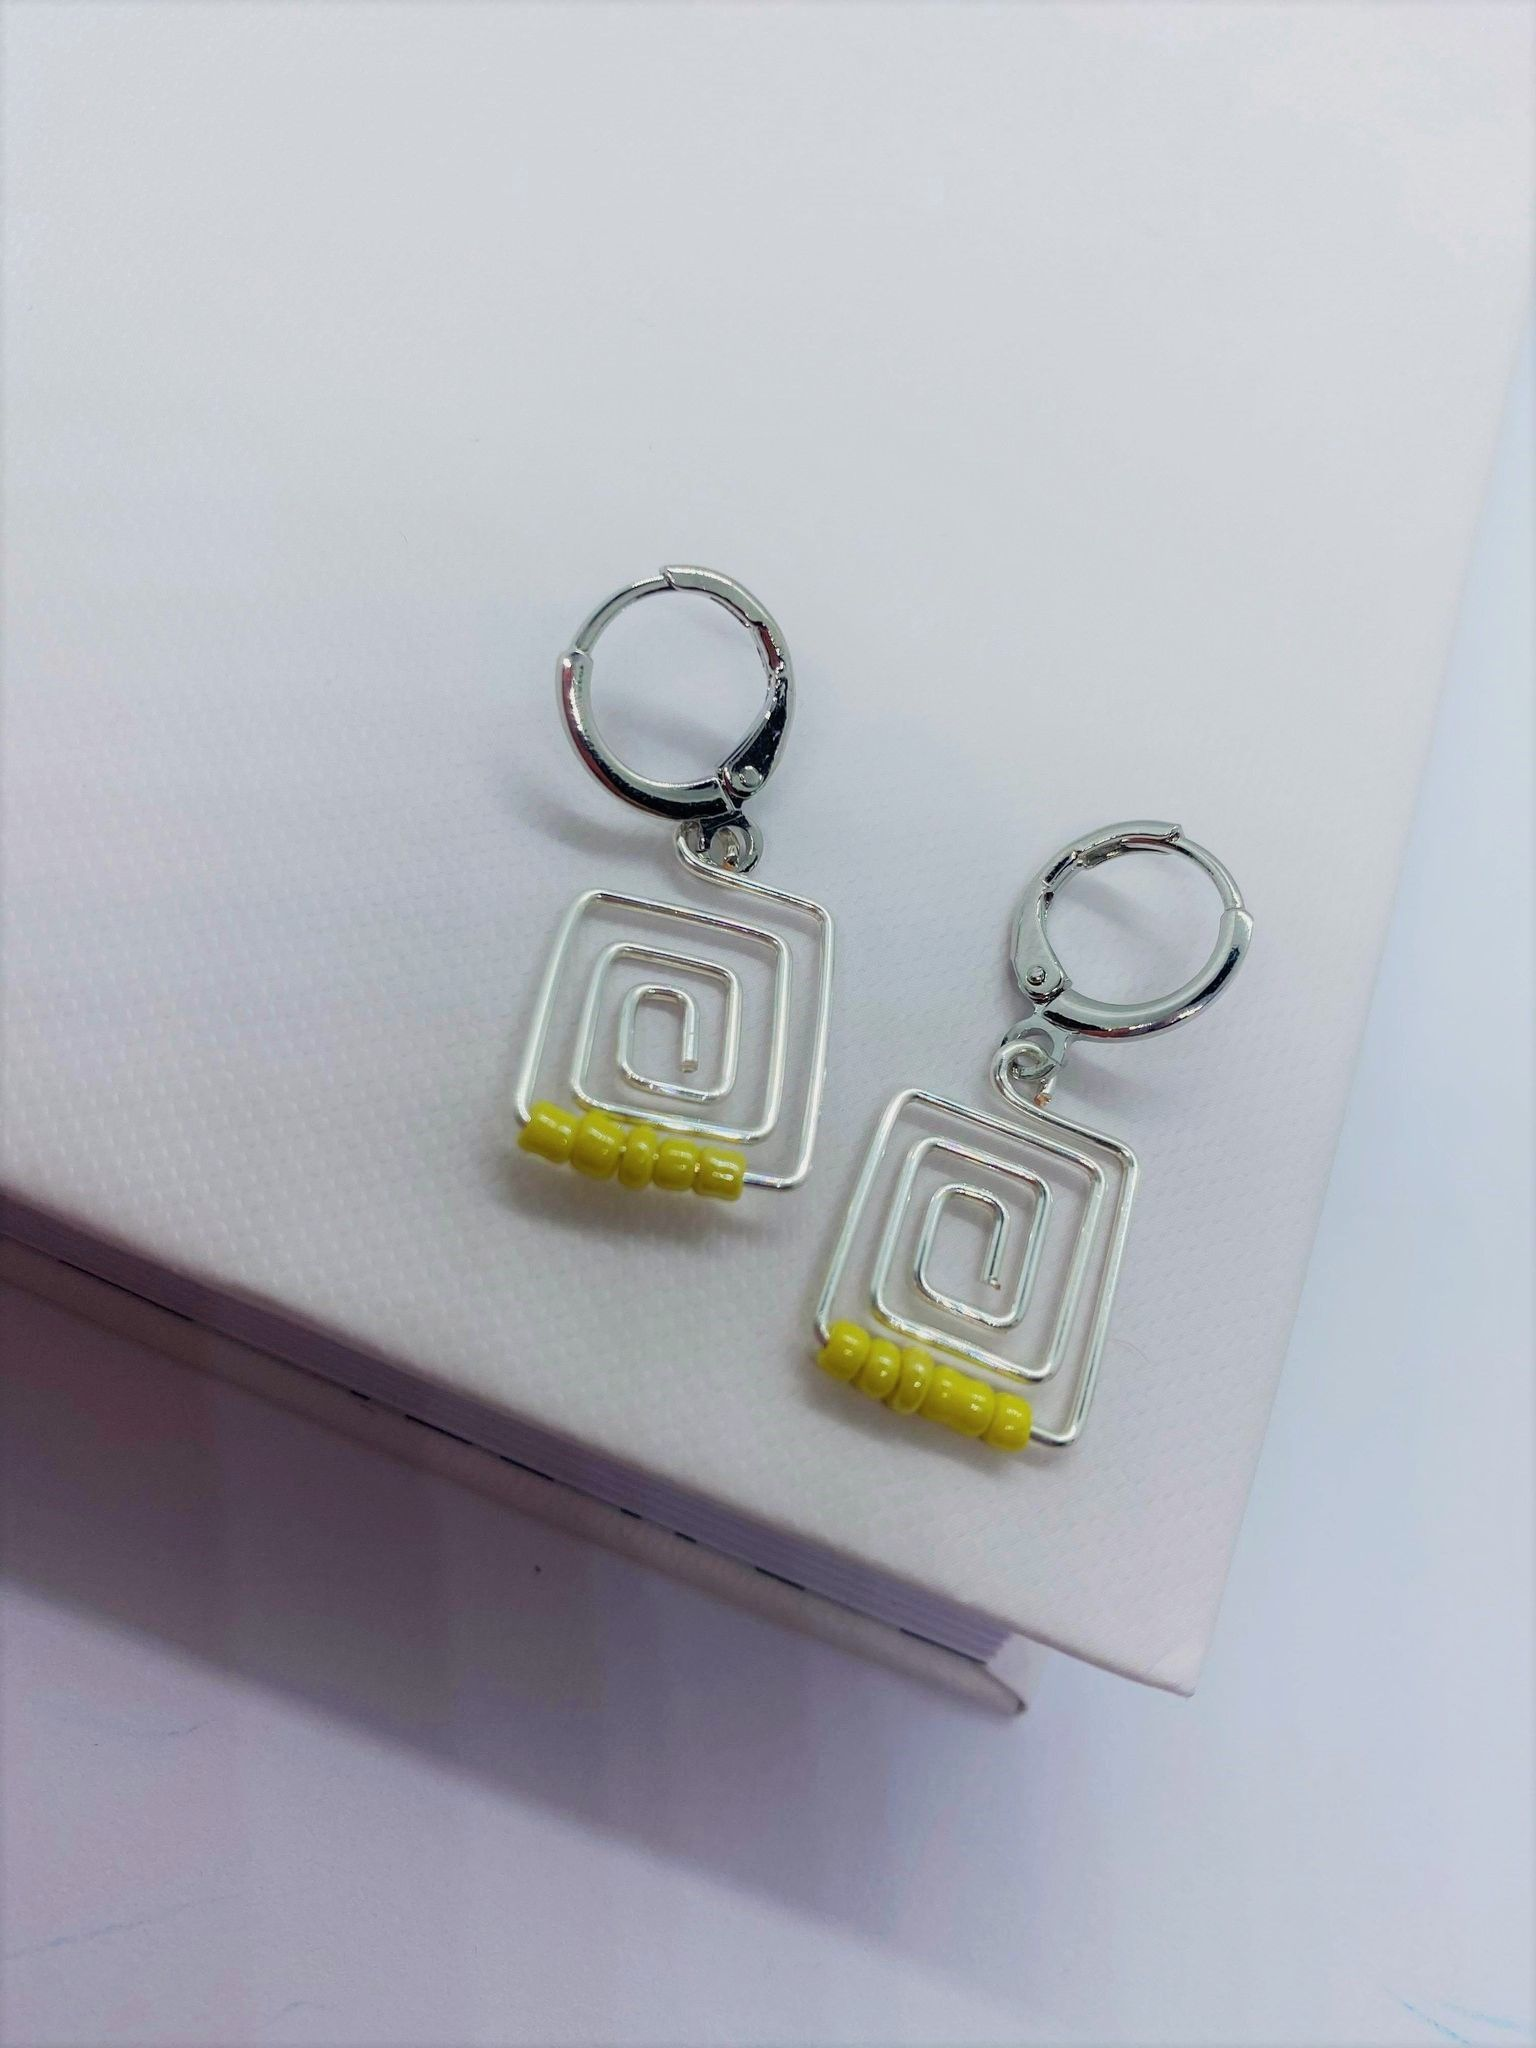 The Paxos pair in yellow